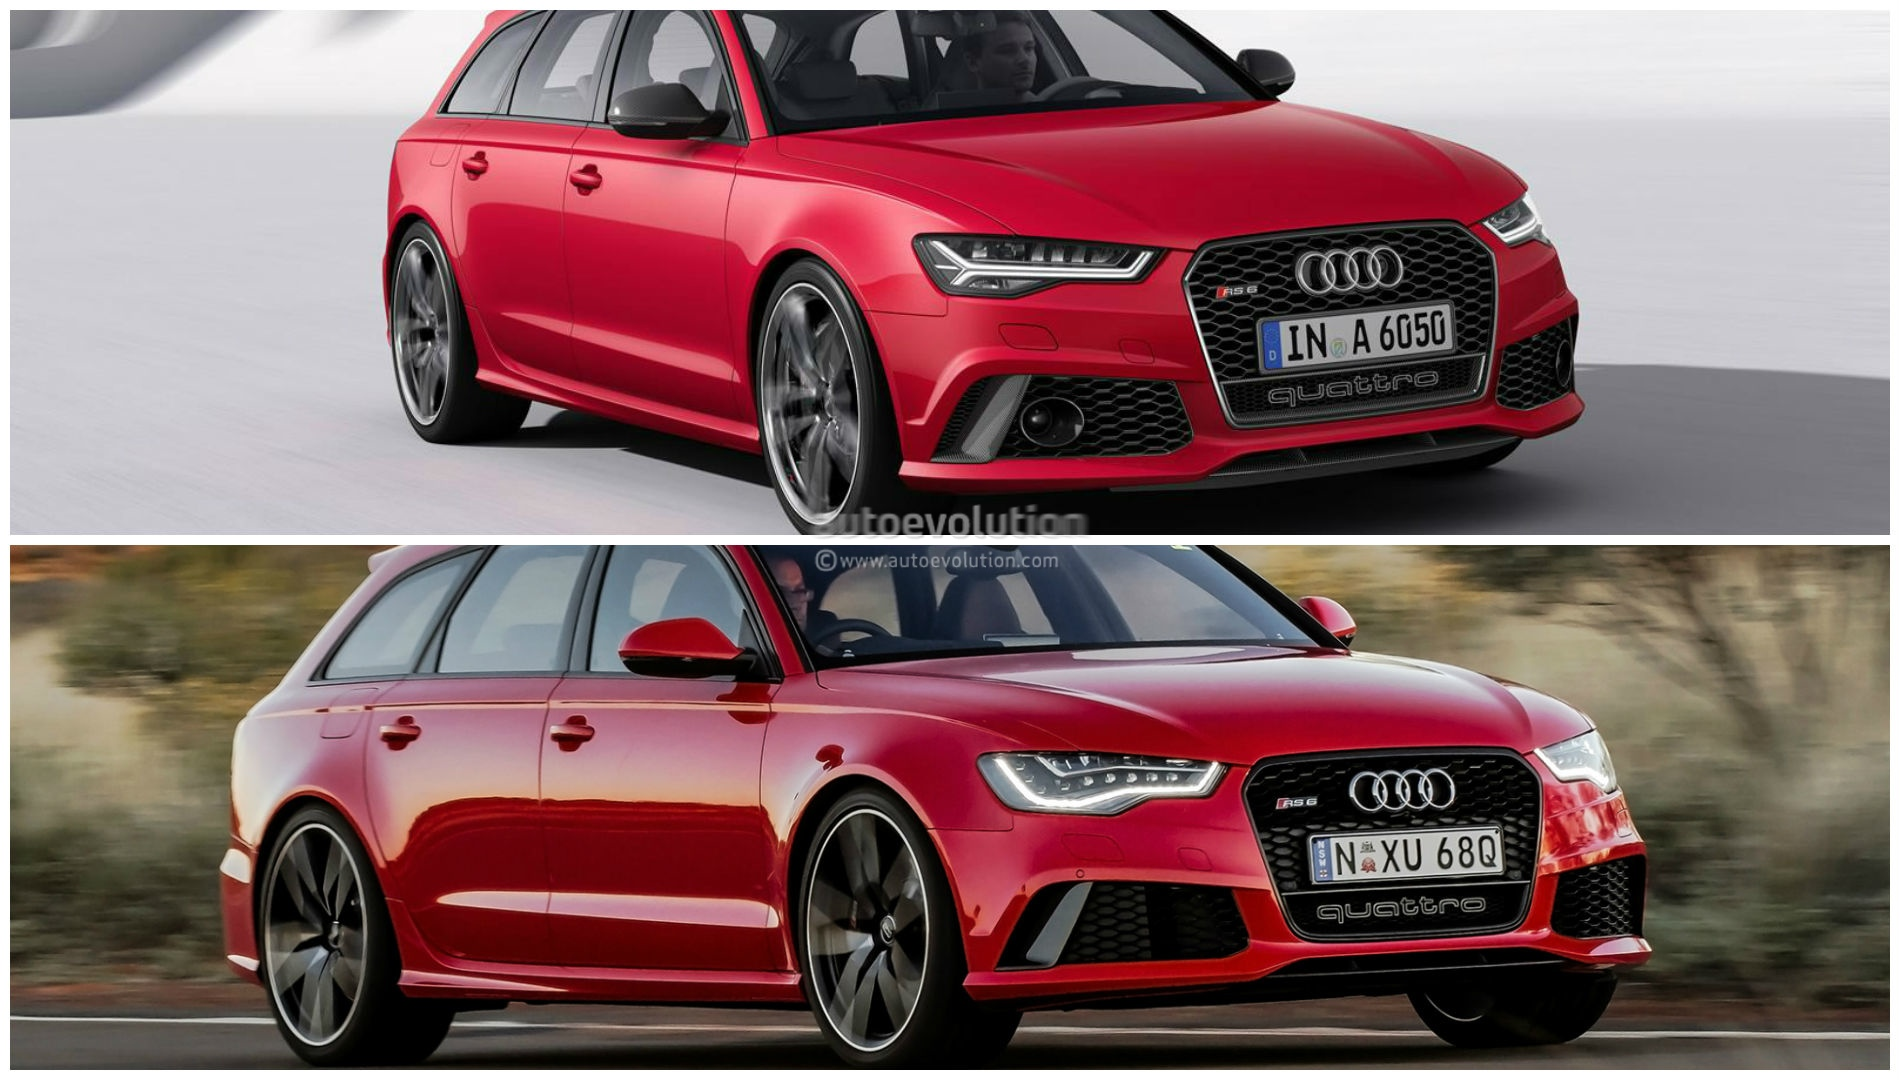 2015 Audi RS6 Avant Facelift Photo Comparison: Subtle Cosmetic Changes - autoevolution